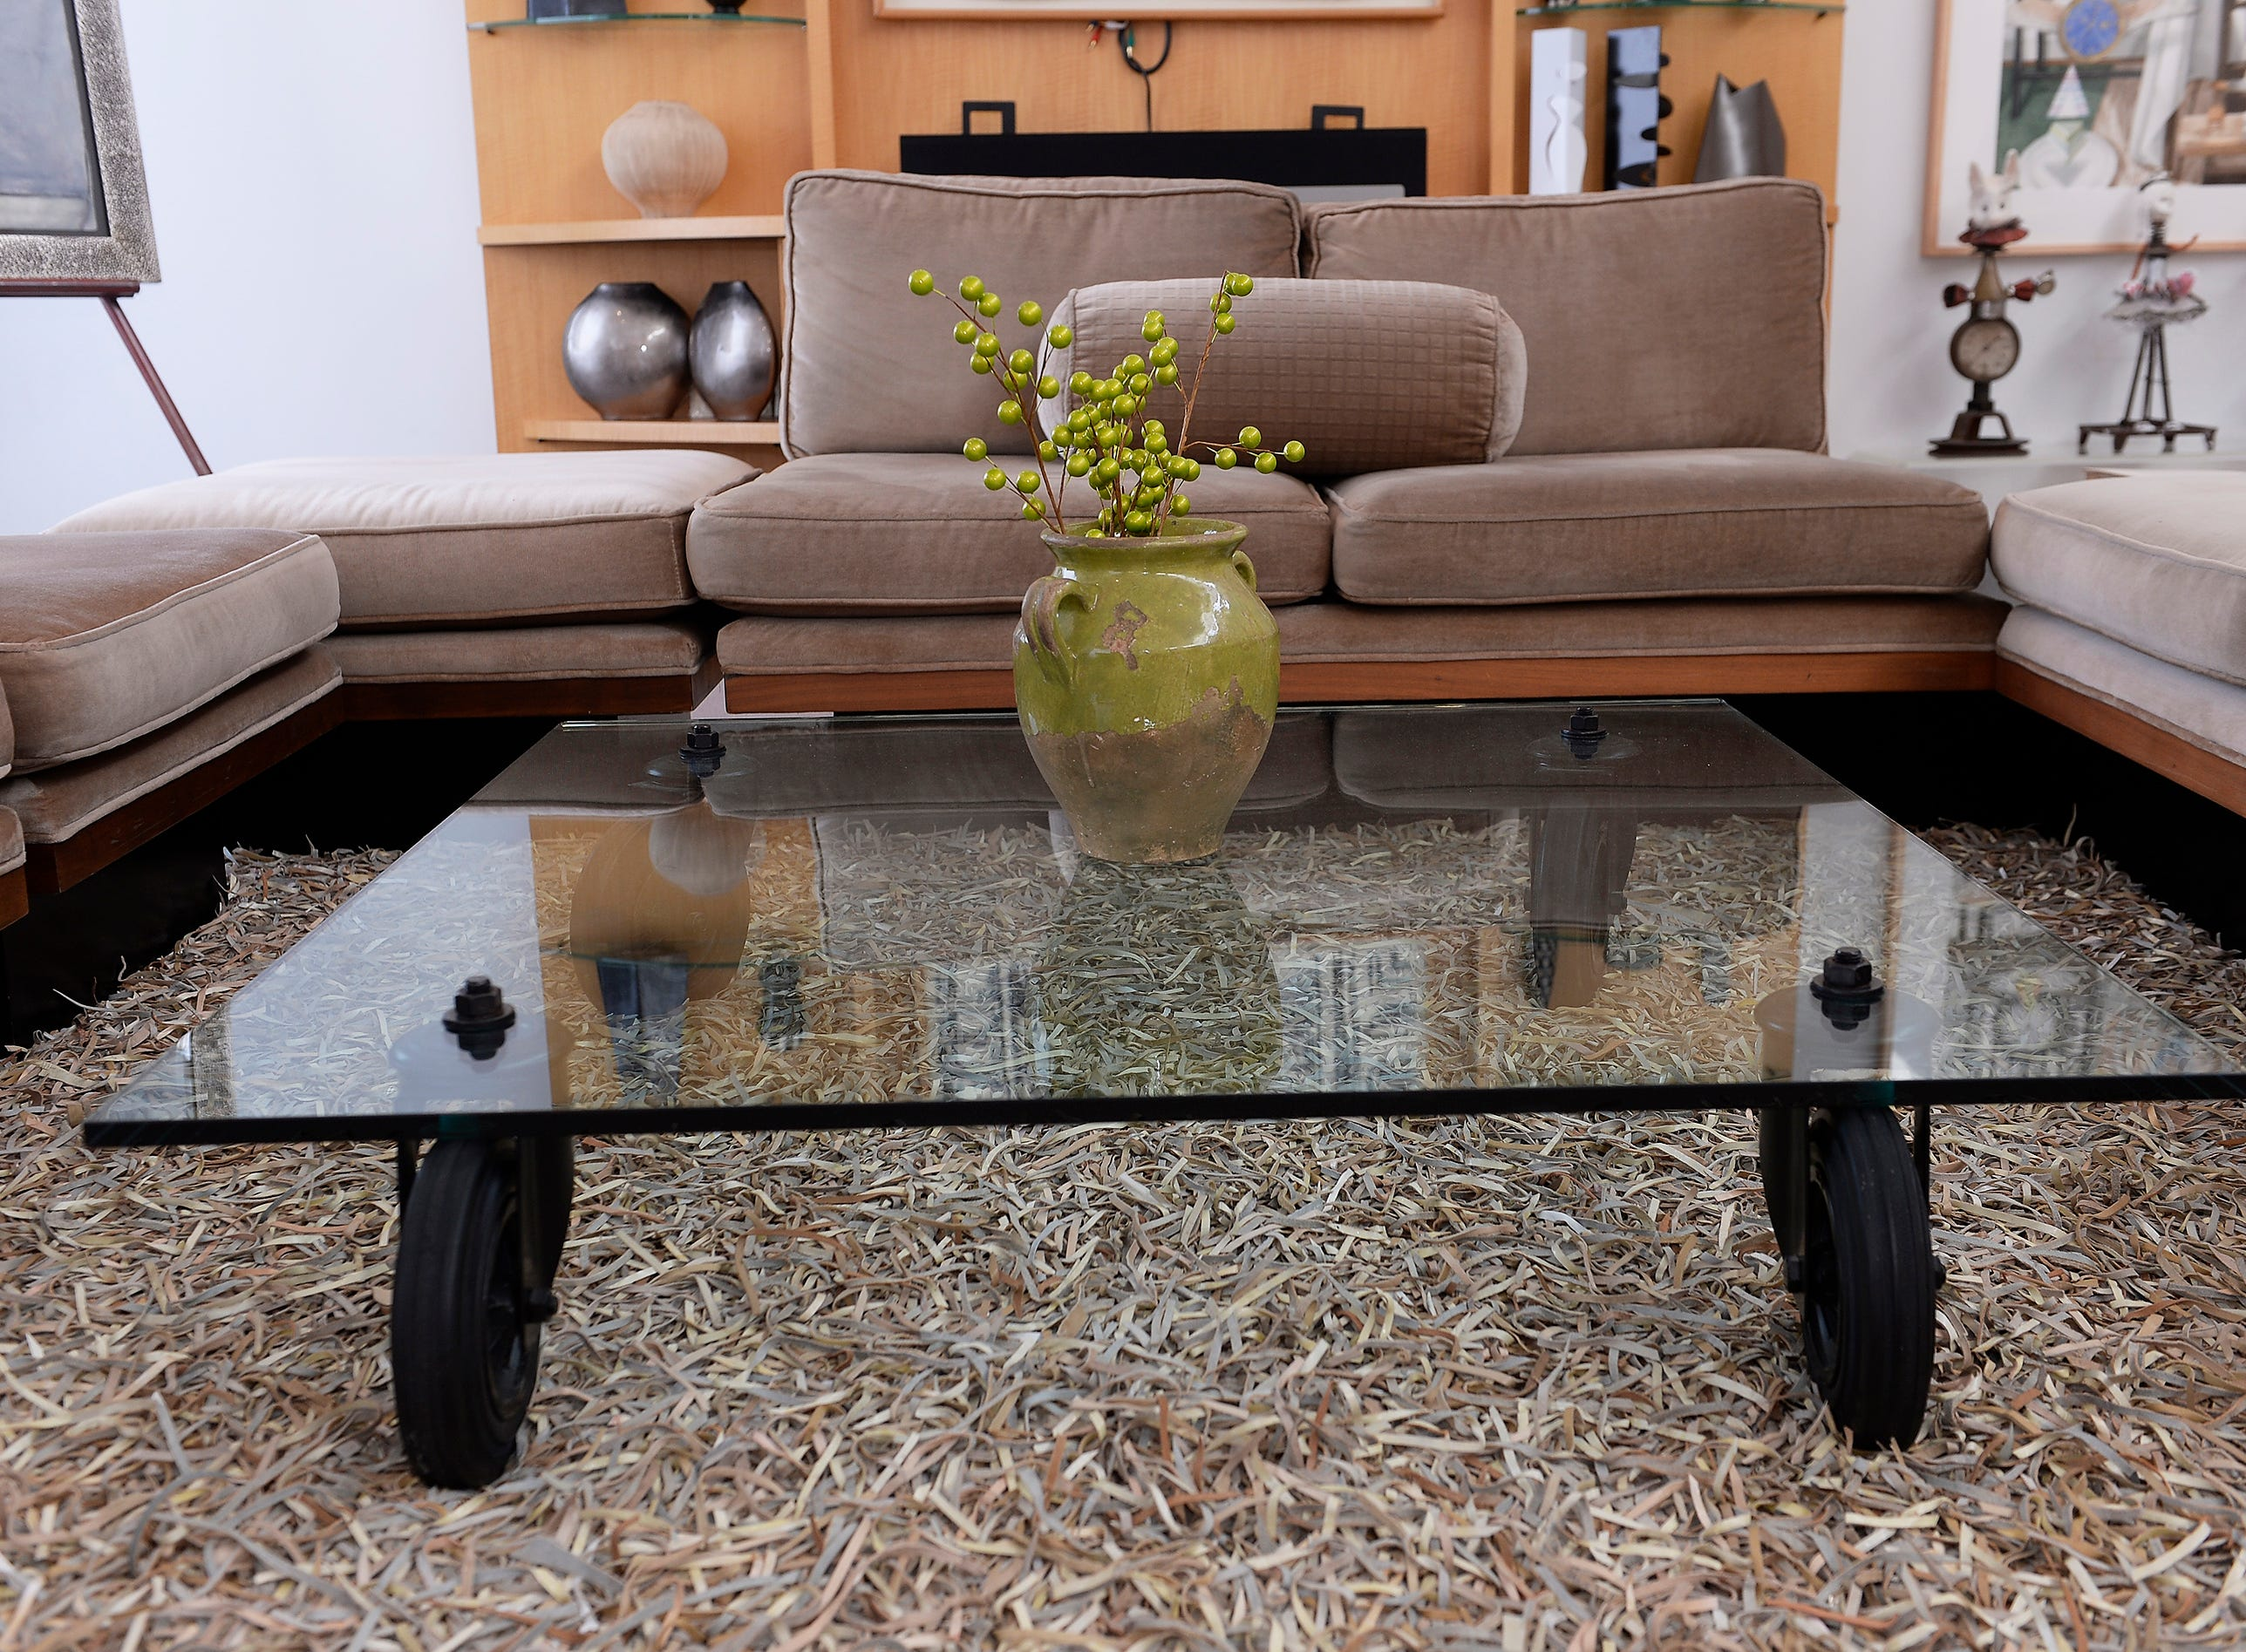 A glass table with a milo baughman sofa sits inside the living room.